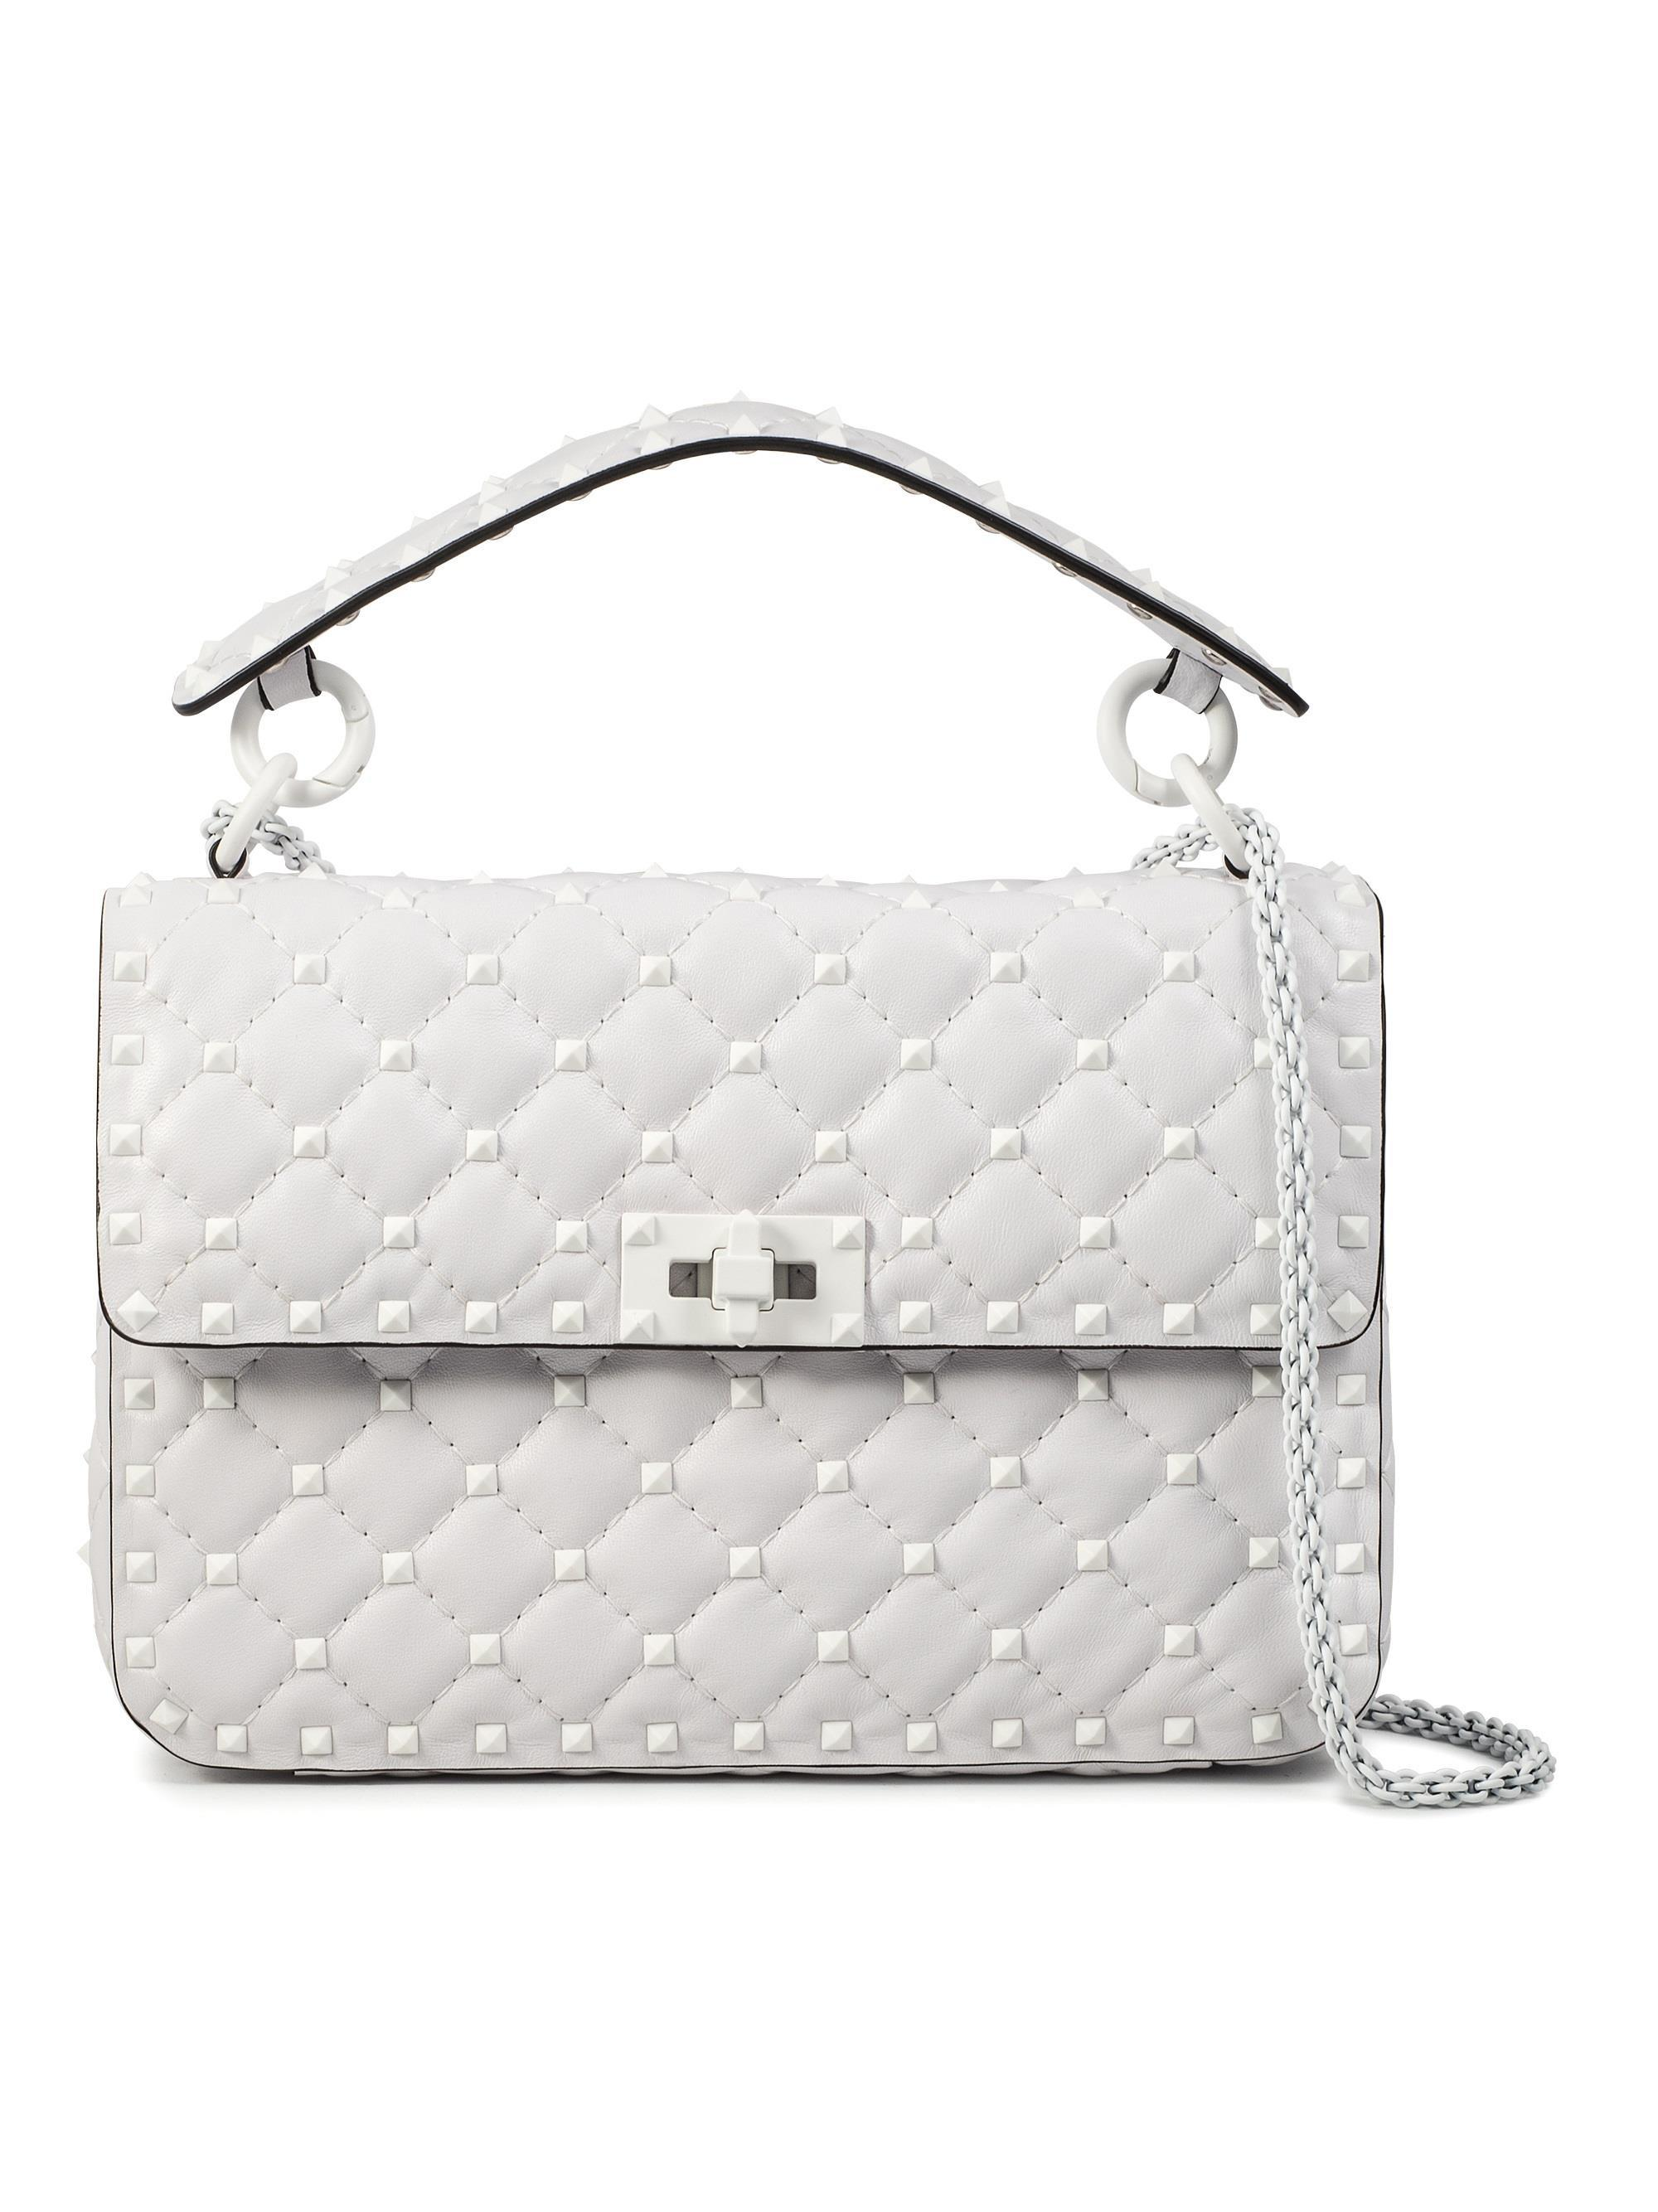 73cd7ea3a0 Gallery. Previously sold at: GENTE Roma · Women's Valentino Rockstud Bags